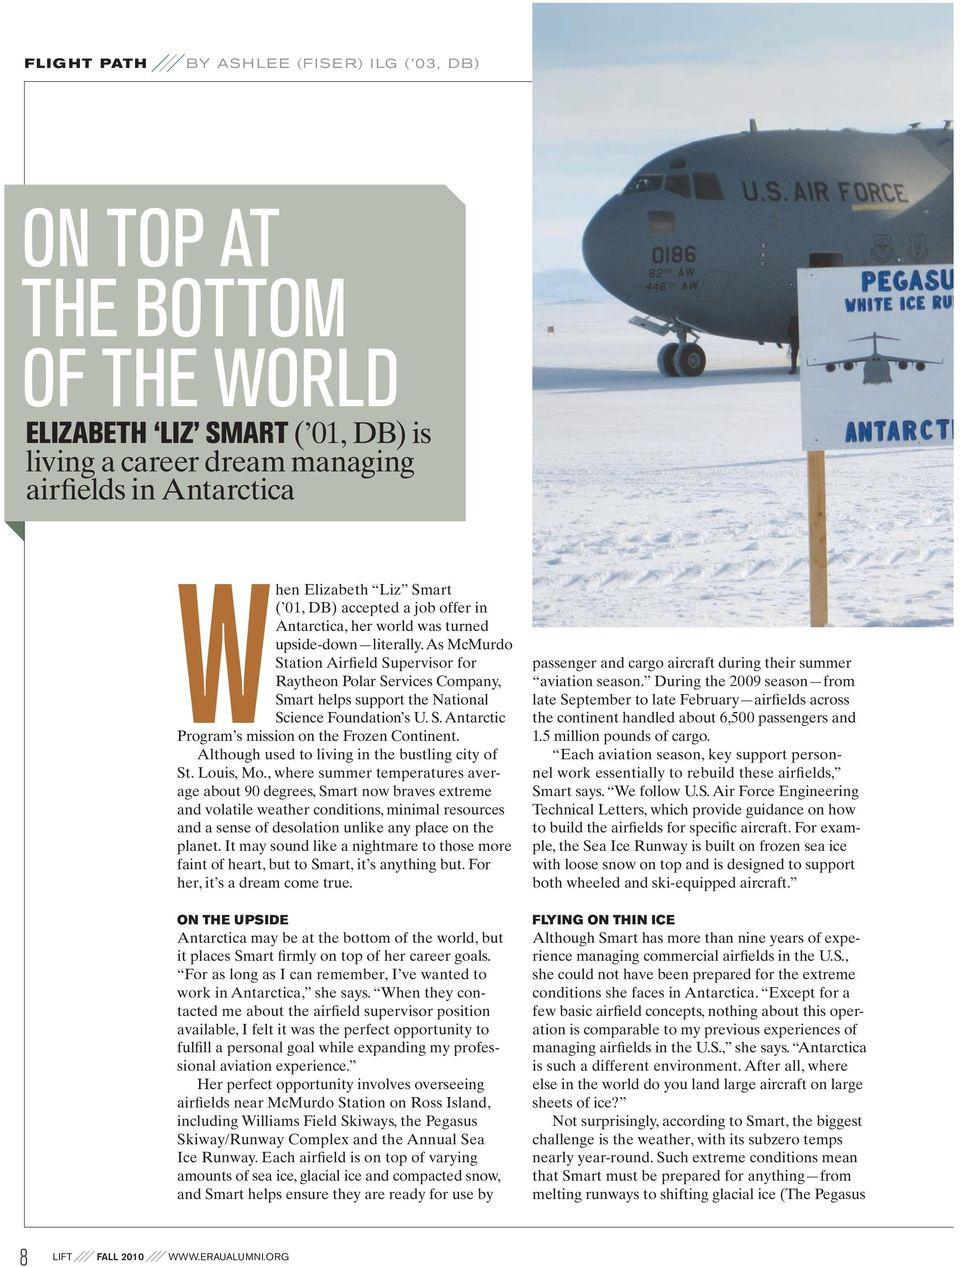 As McMurdo Station Airfield Supervisor for Raytheon Polar Services Company, Smart helps support the National Science Foundation s U. S. Antarctic Program s mission on the Frozen Continent.